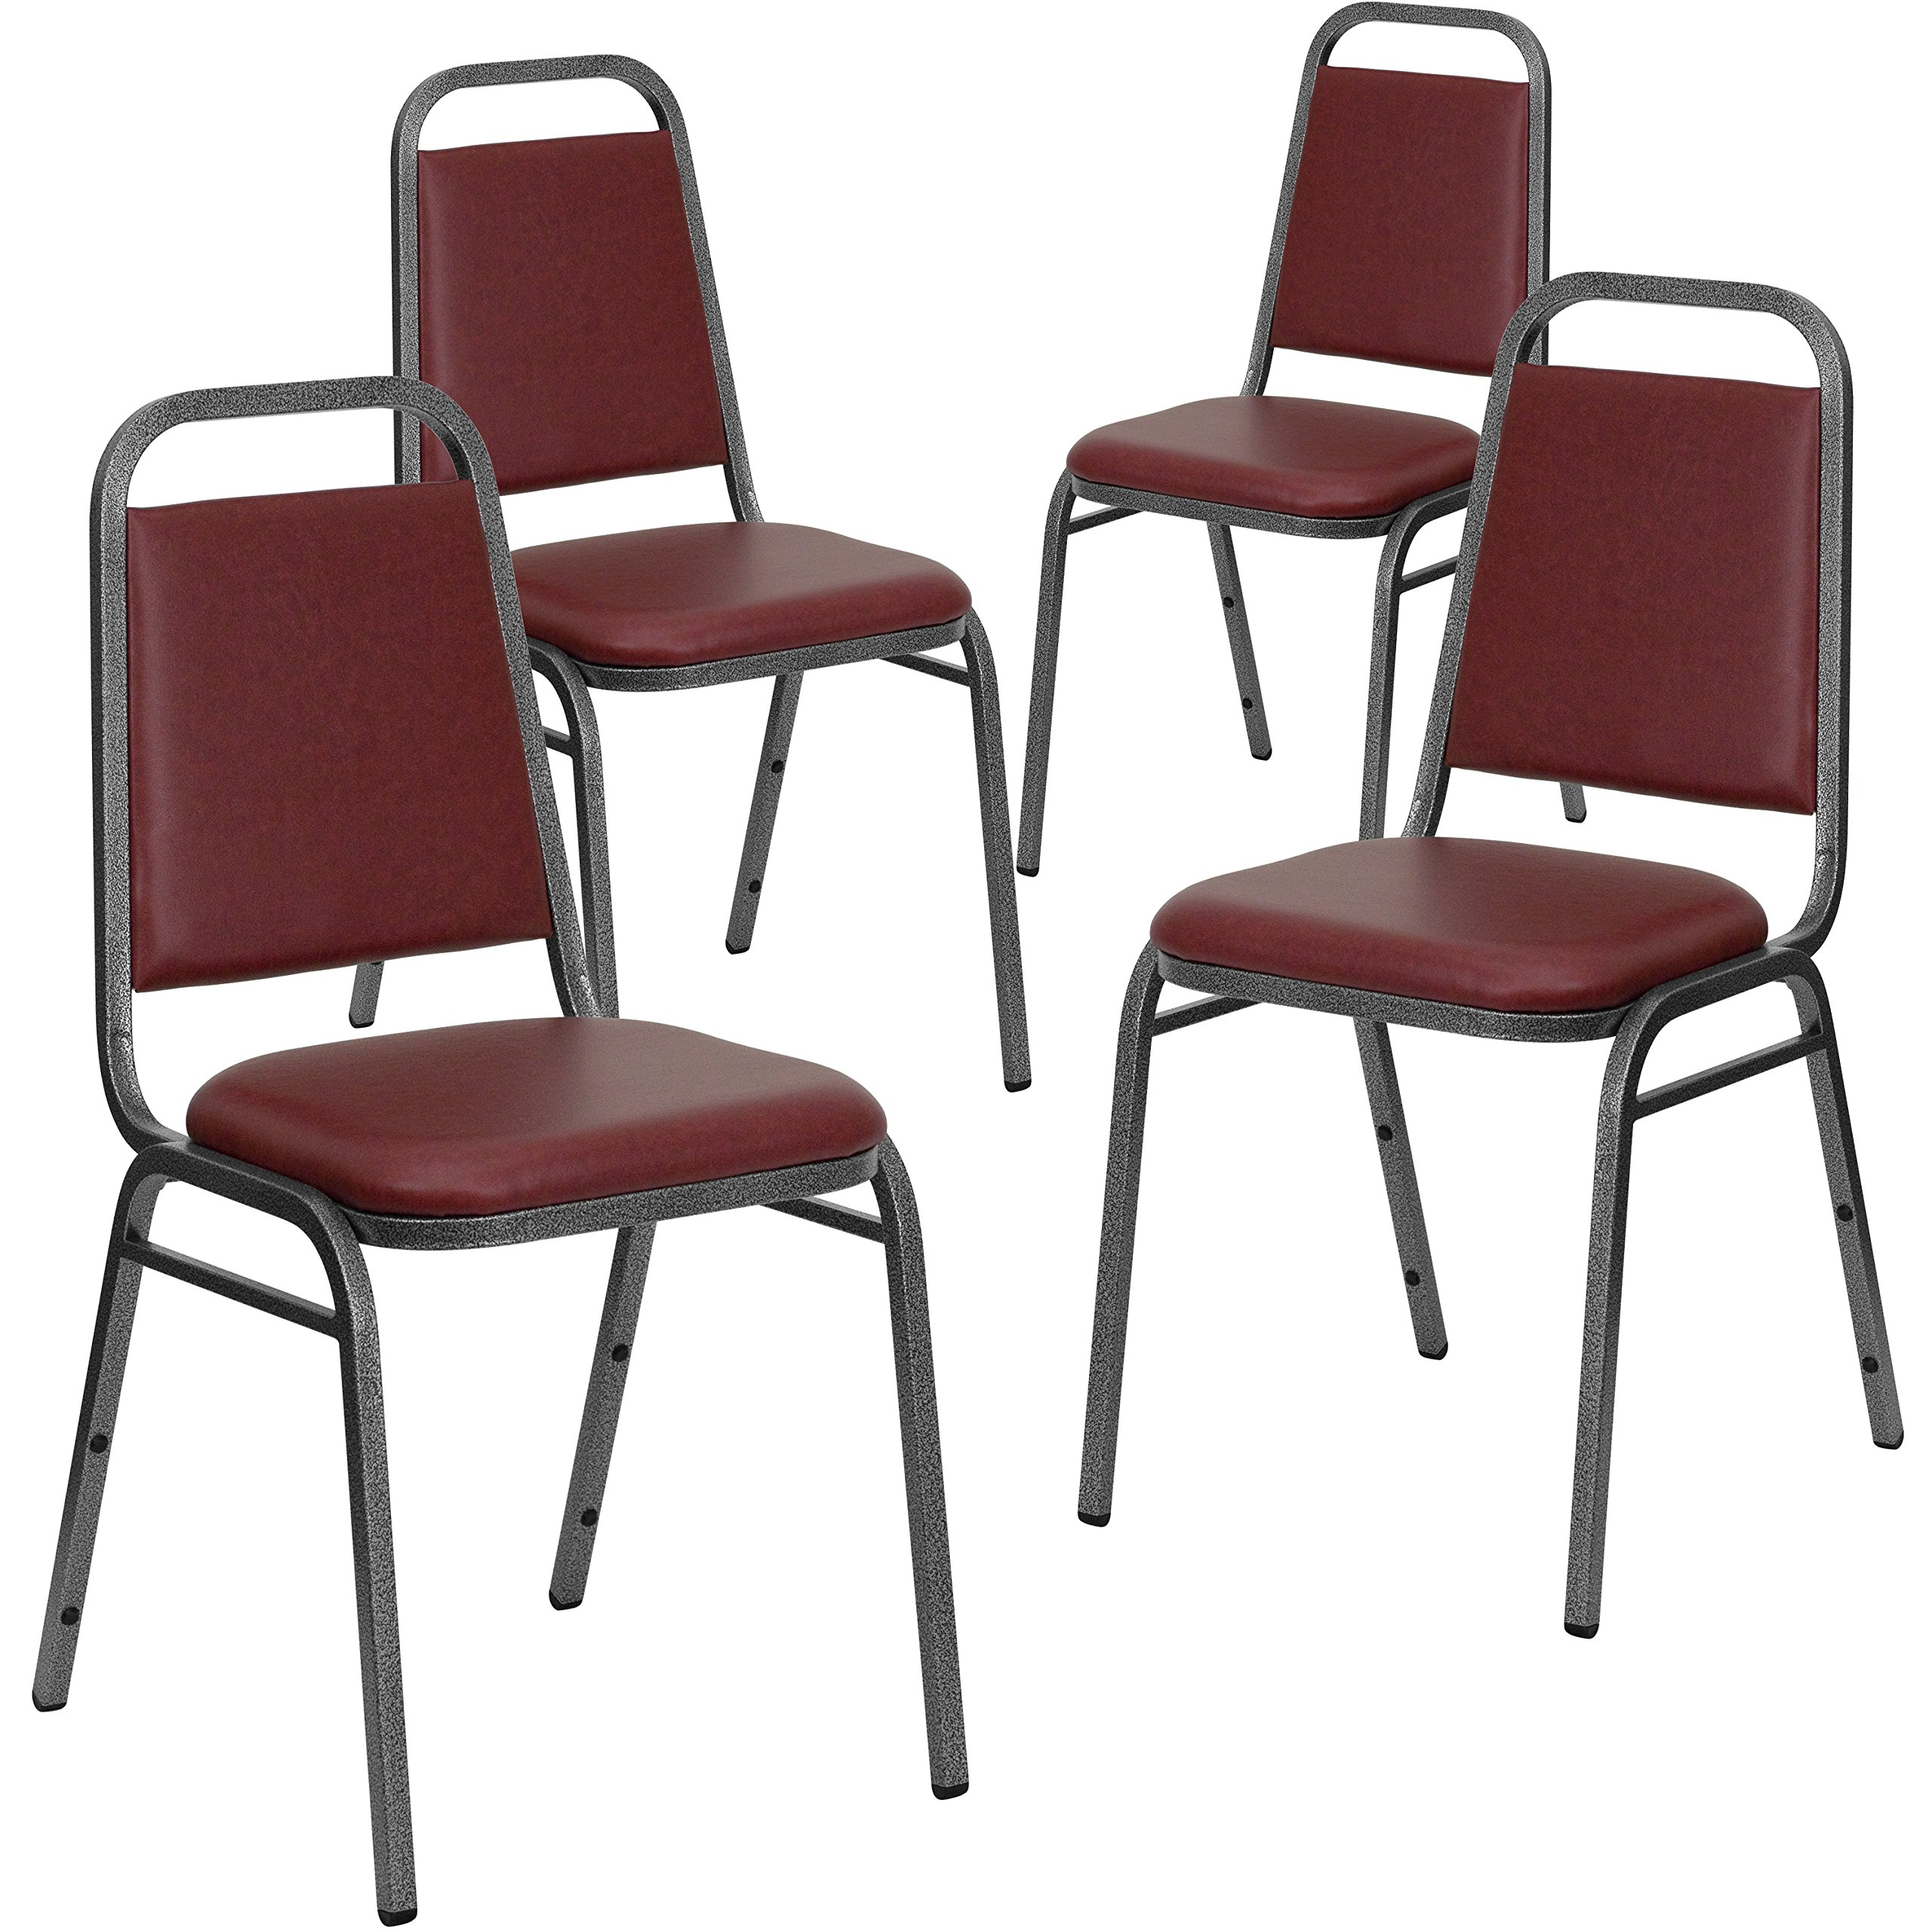 Flash Furniture 4 Pk. HERCULES Series Trapezoidal Back Stacking Banquet Chair in Burgundy Vinyl - Silver Vein Frame by Flash Furniture